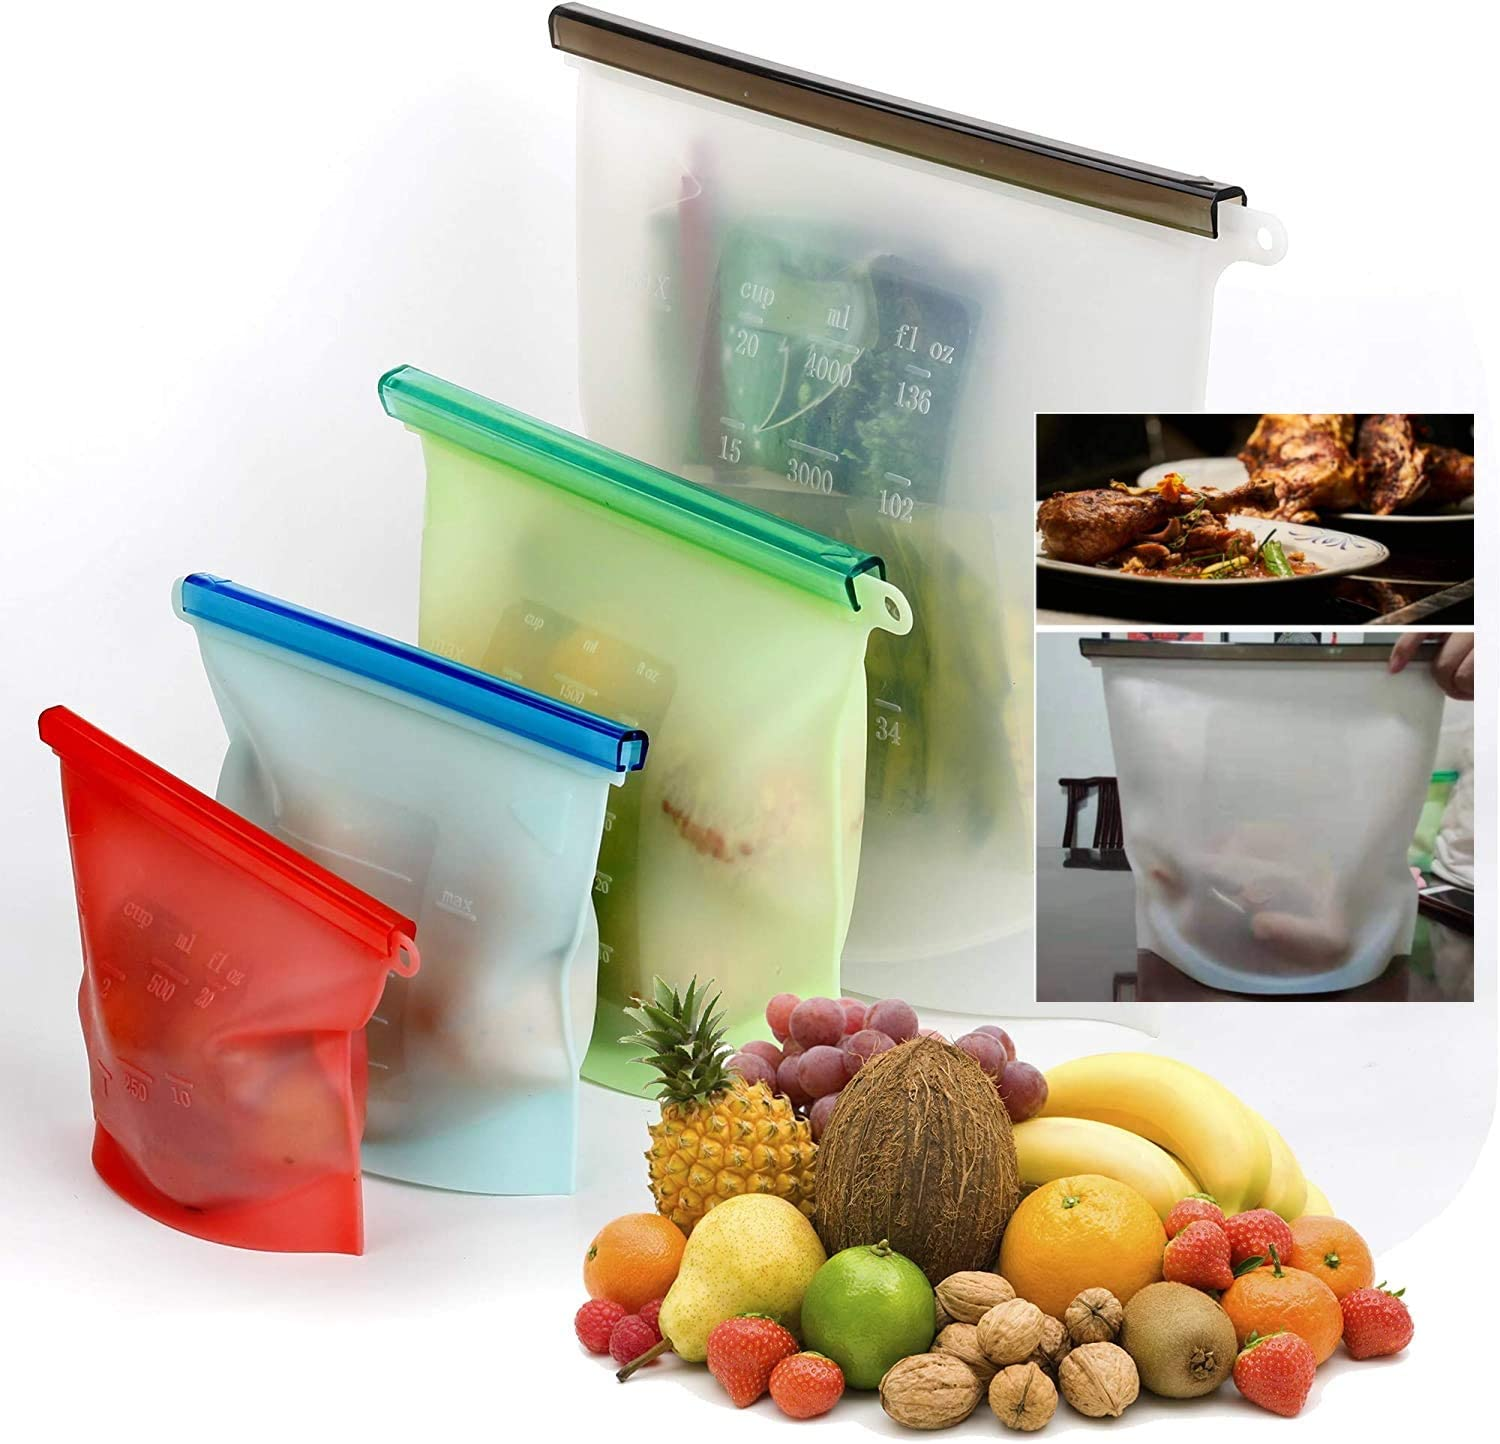 CMP Reusable Silicone Food Storage Bags,Airtight Seal Food Preservation Container Sets for Chicken Meat Fruits Vegetables Snack Lunch Liquid Sous Vide Sandwich Freezer Microwave 4 Pack XL-L-M-S